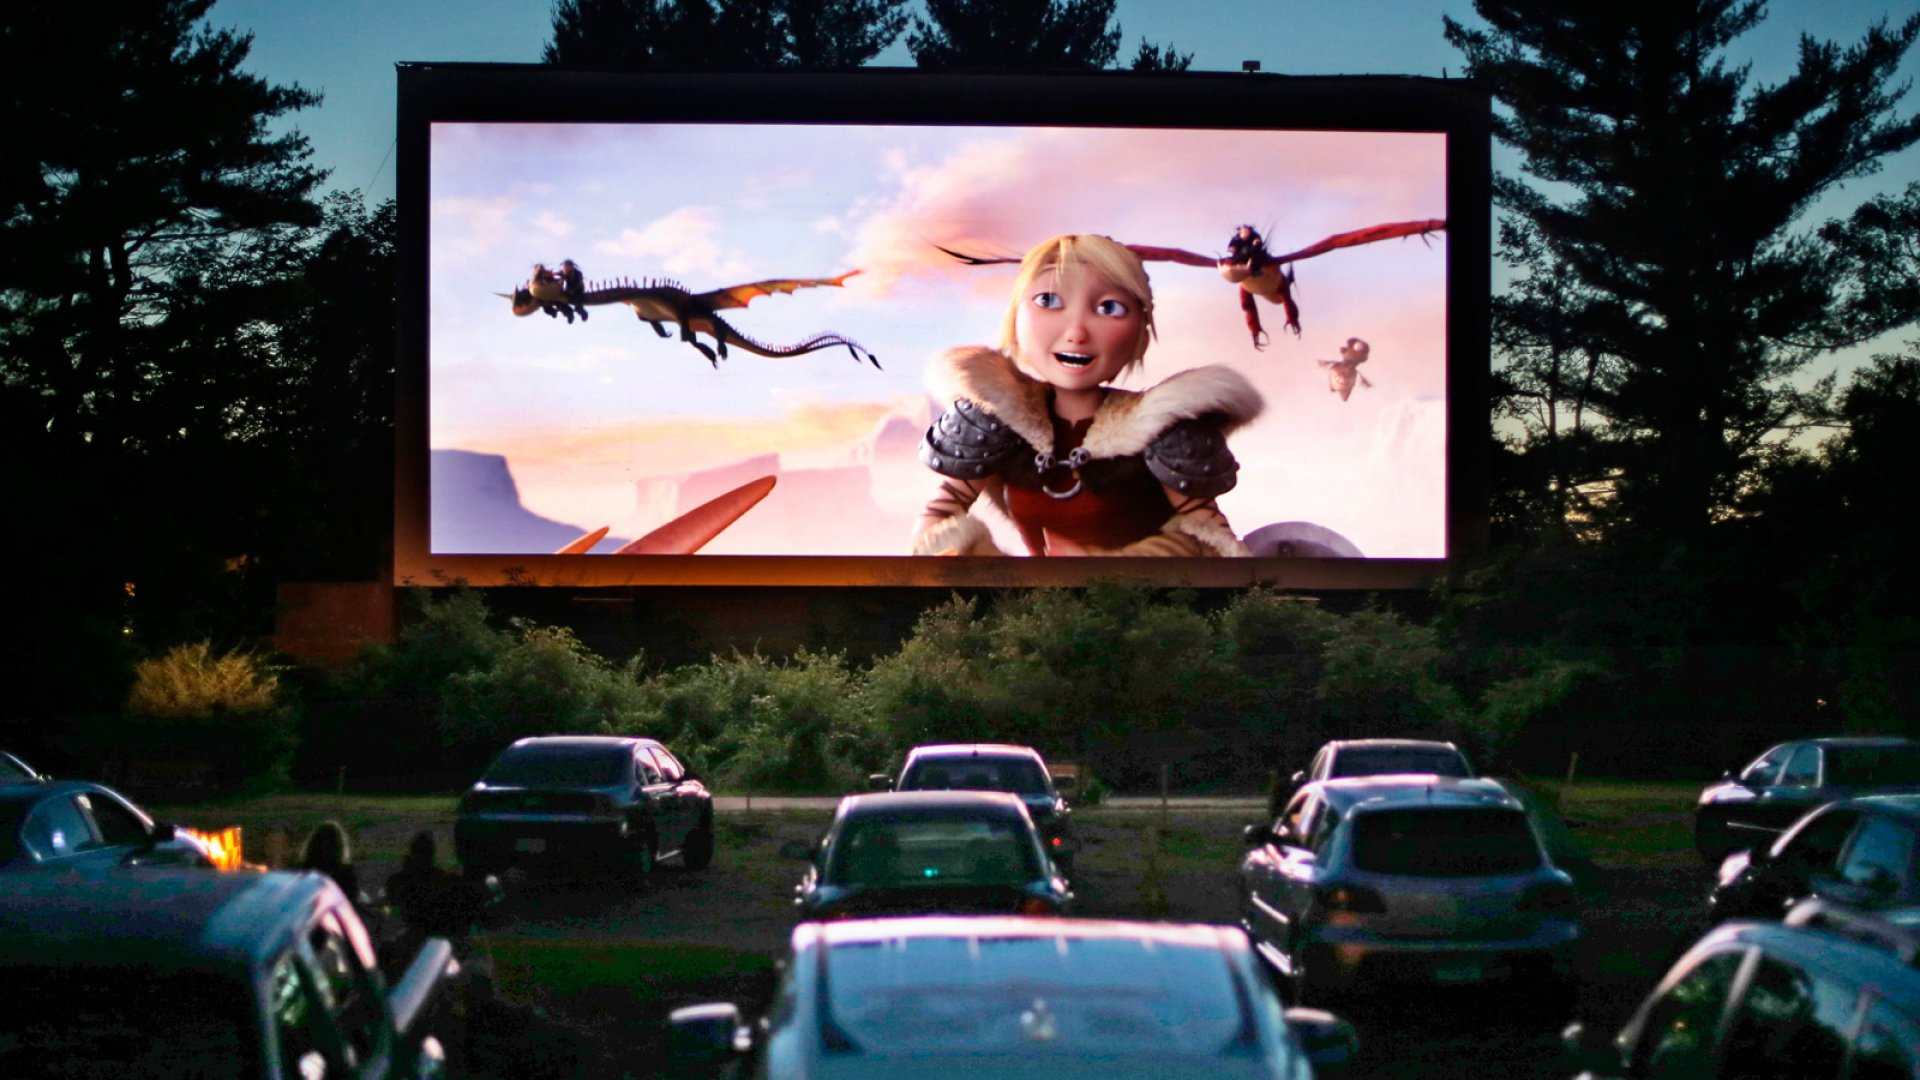 Drive-In Movie Theaters Go Digital With Help From the Crowd